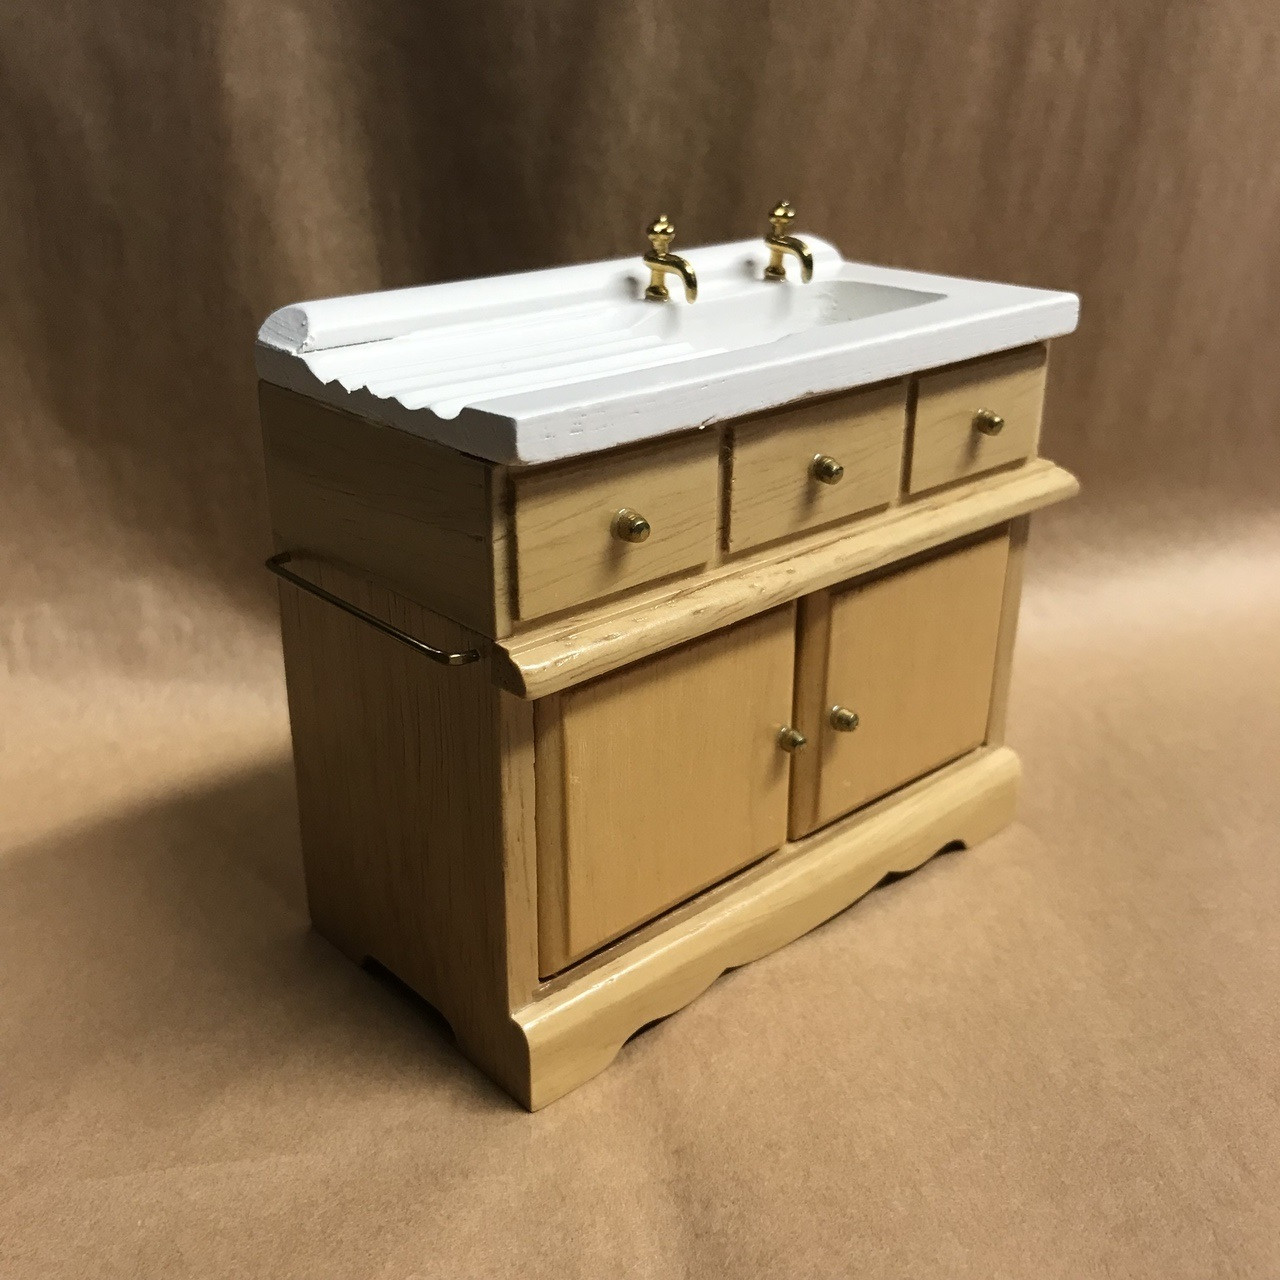 Azd0144a Country Kitchen Sink Jeepers Dollhouse Miniatures